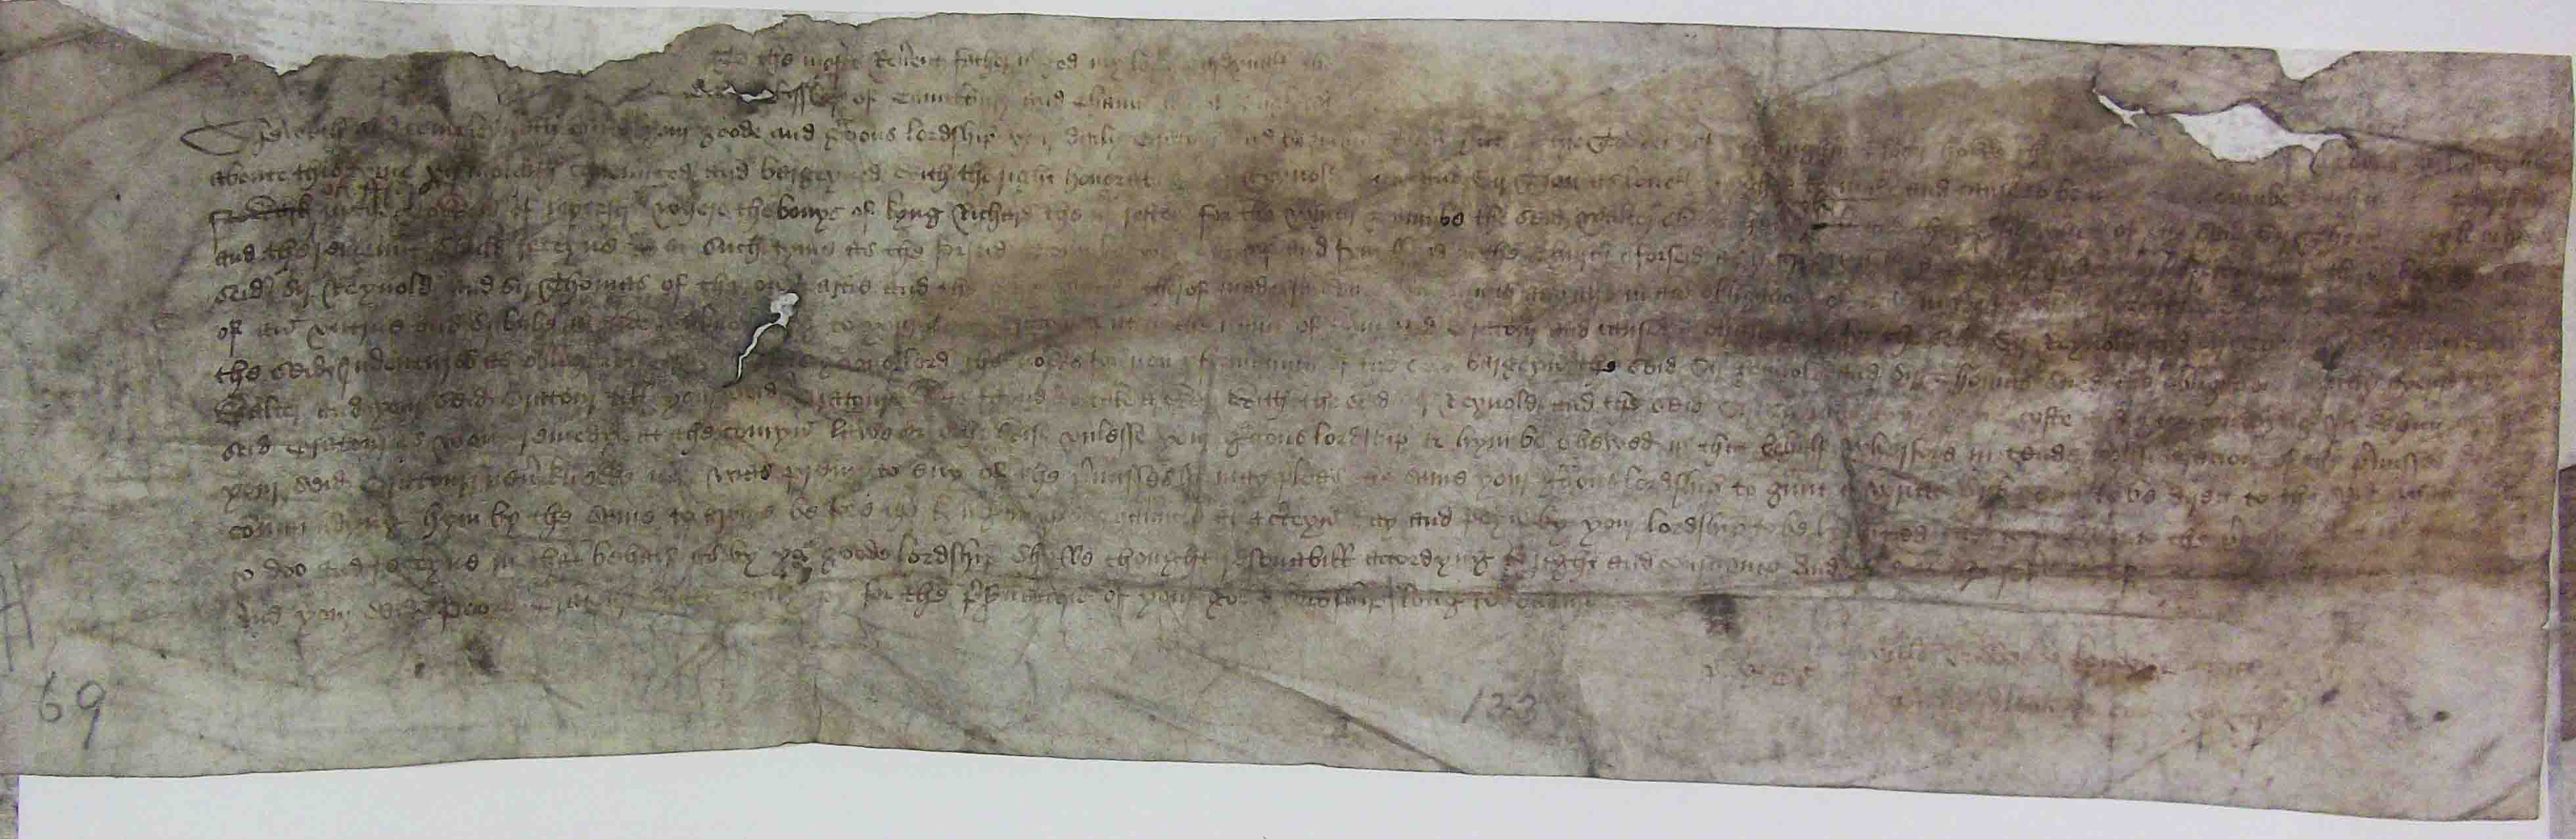 Chancery bill of complaint from Ralph Hill of Nottingham. He alleged that Walter Hylton had fraudulently inserted Hill's name into the indenture and obligations for the construction of King Richard III's tomb at Leicester. When Hill unknowingly defaulted on the agreements he became liable to powerful counsellors of the new king, Henry VII, for the resulting debts (which he was unable to pay); c. July 1496. (C 1/206/69)